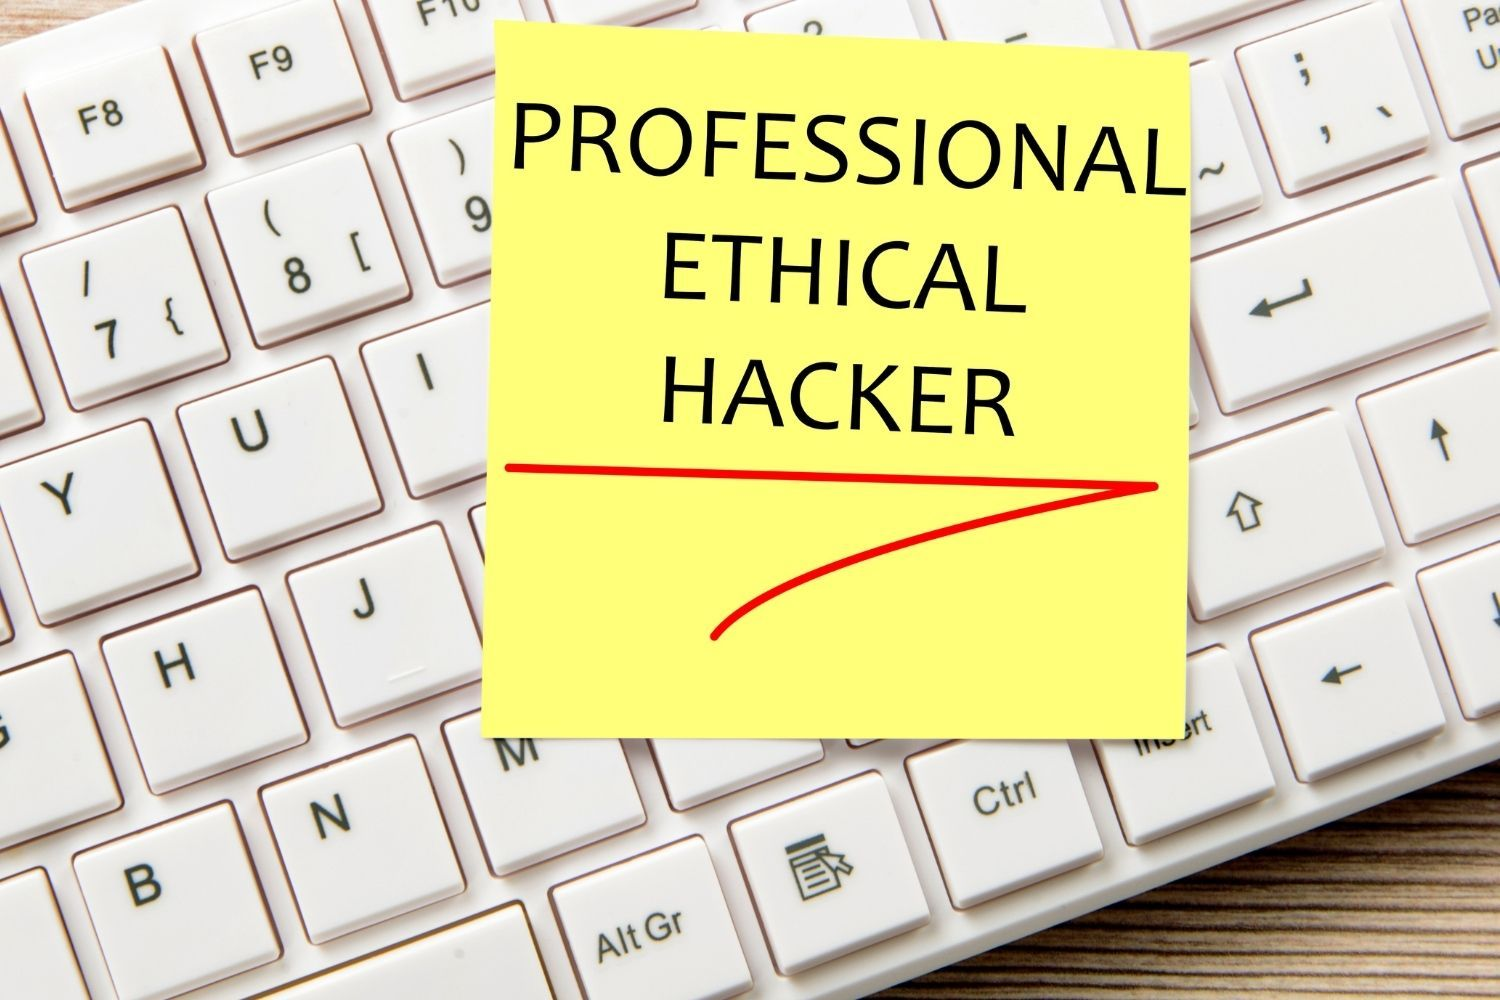 Everything you need to know about becoming a certified professional ethical hacker